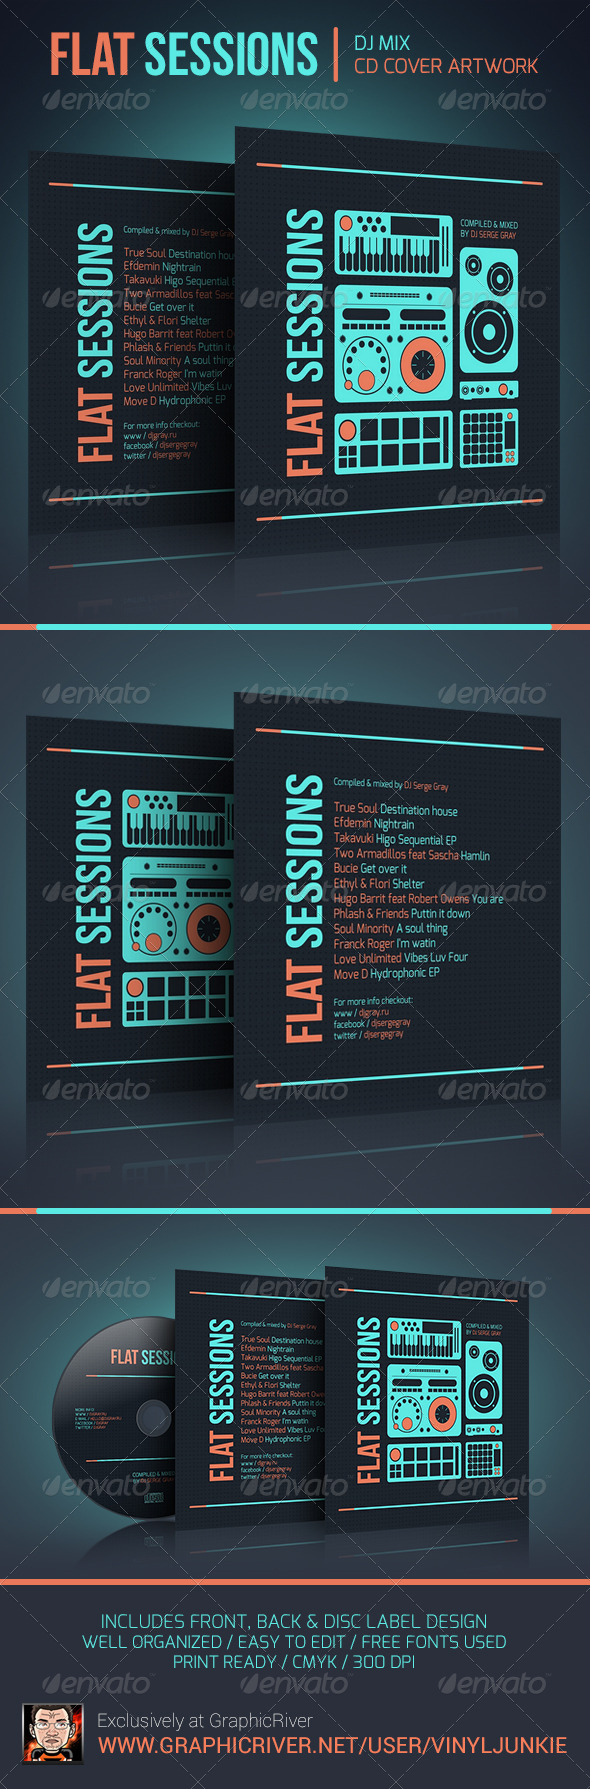 GraphicRiver Flat Sessions DJ Mix CD Cover Artwork 6021444